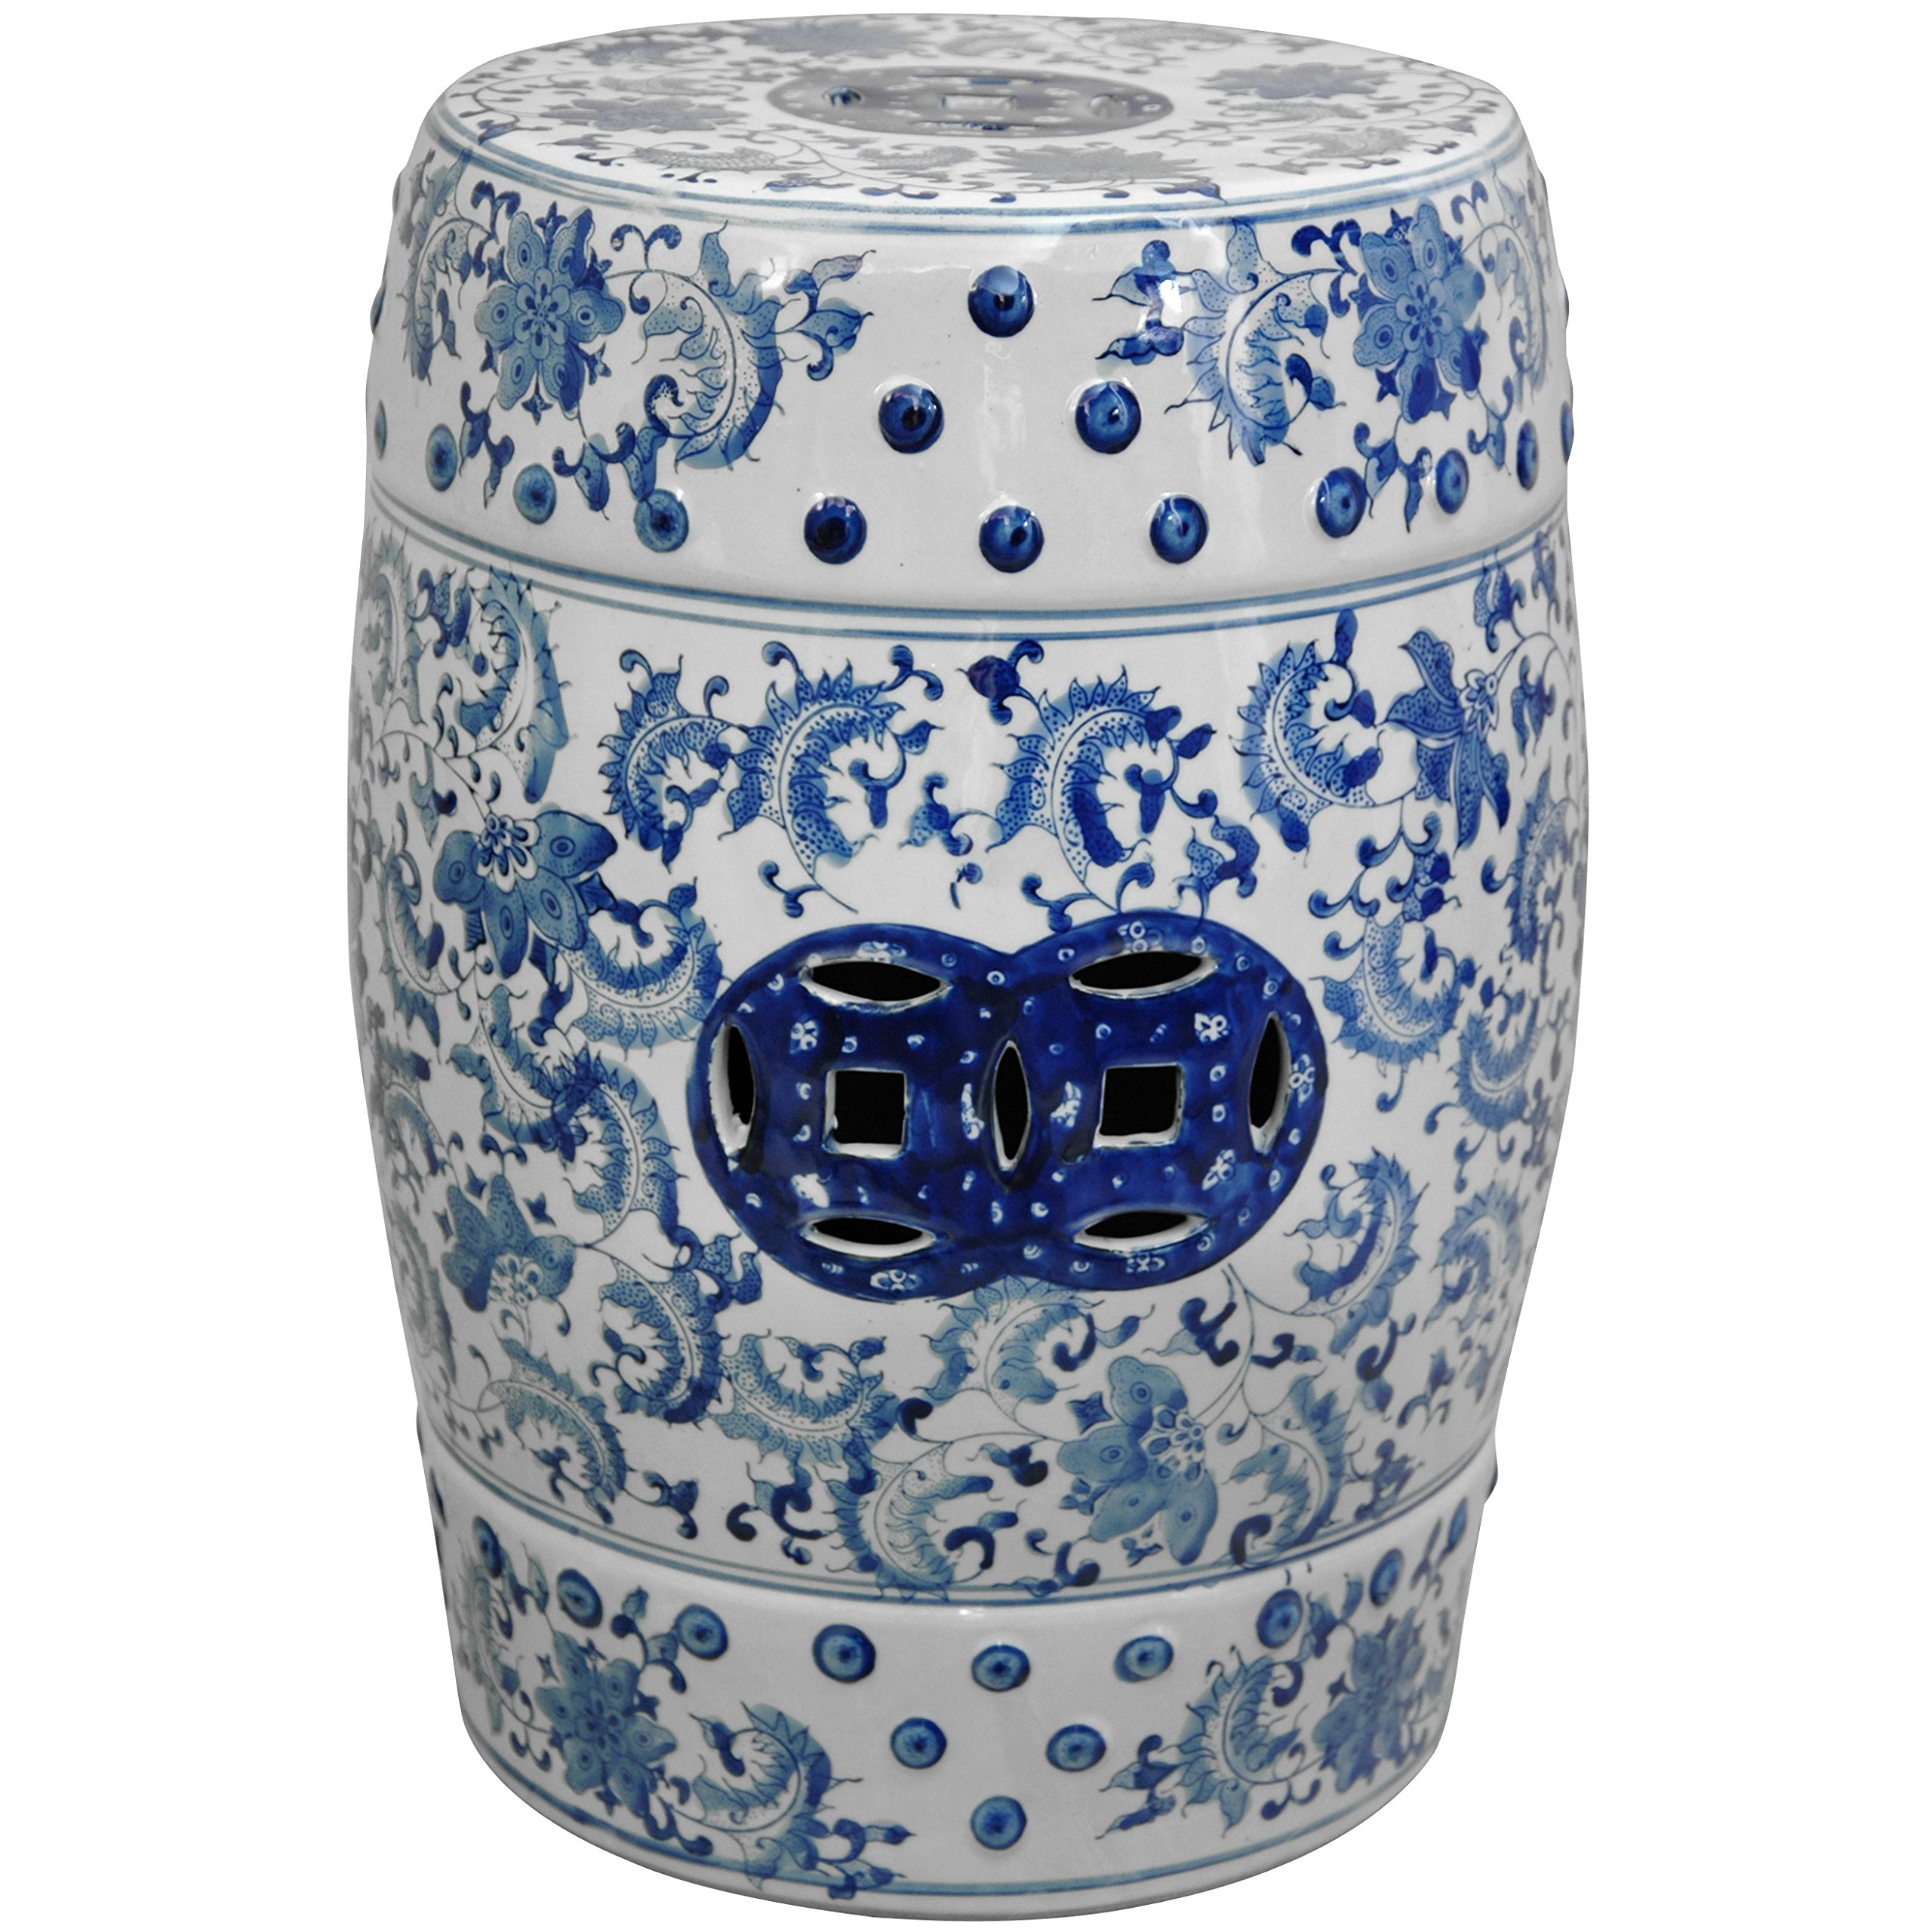 Oriental Furniture 18'' Floral Blue & White Porcelain Garden Stool by ORIENTAL Furniture (Image #1)